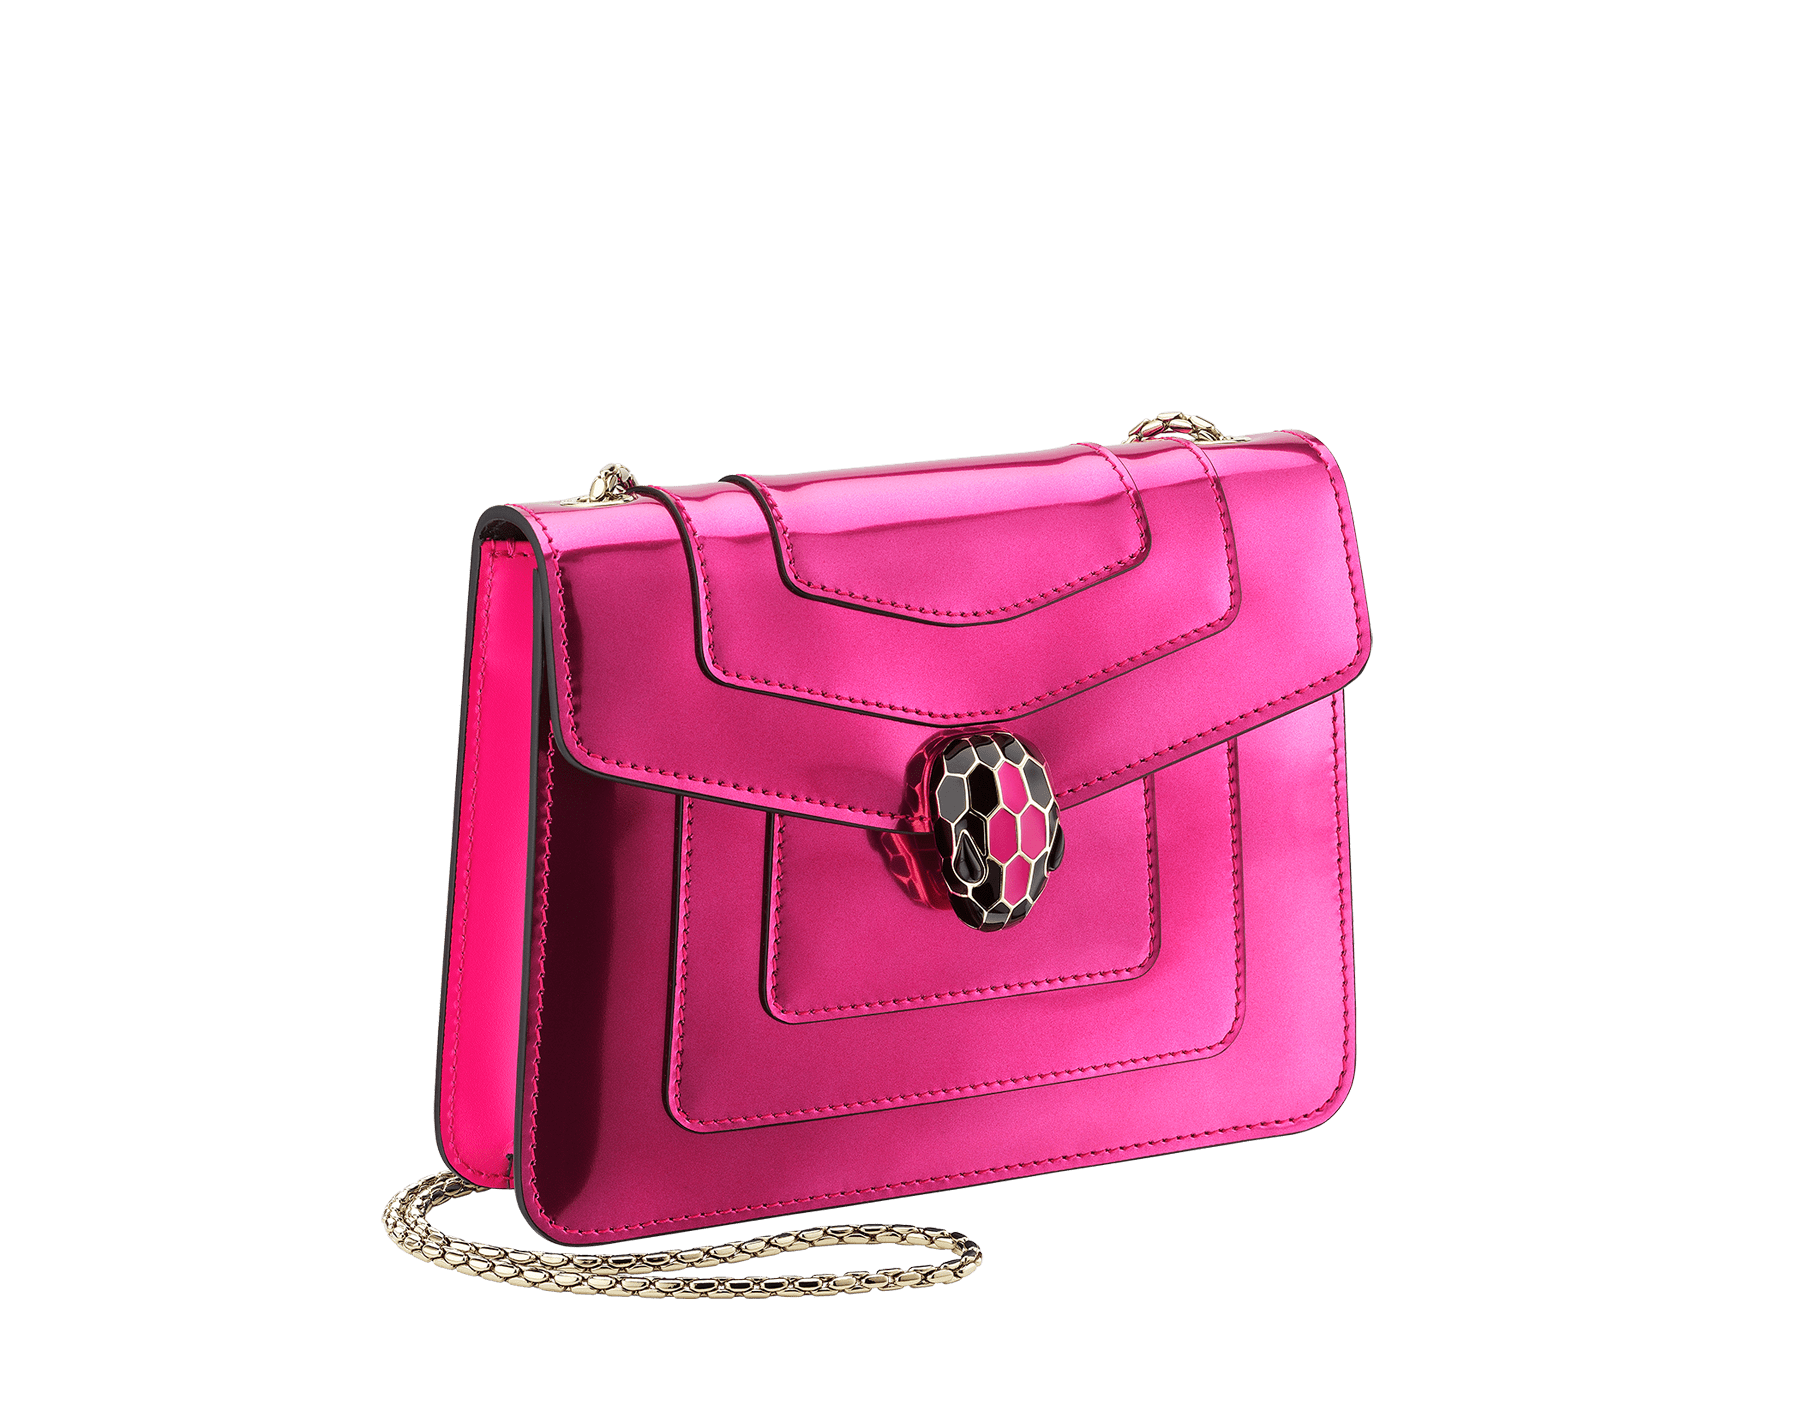 """Serpenti Forever"" crossbody bag in flash amethyst new brushed metallic calf leather. Iconic snake head closure in light gold plated brass enriched with black and flash amethyst enamel and black onyx eyes. 288885 image 2"